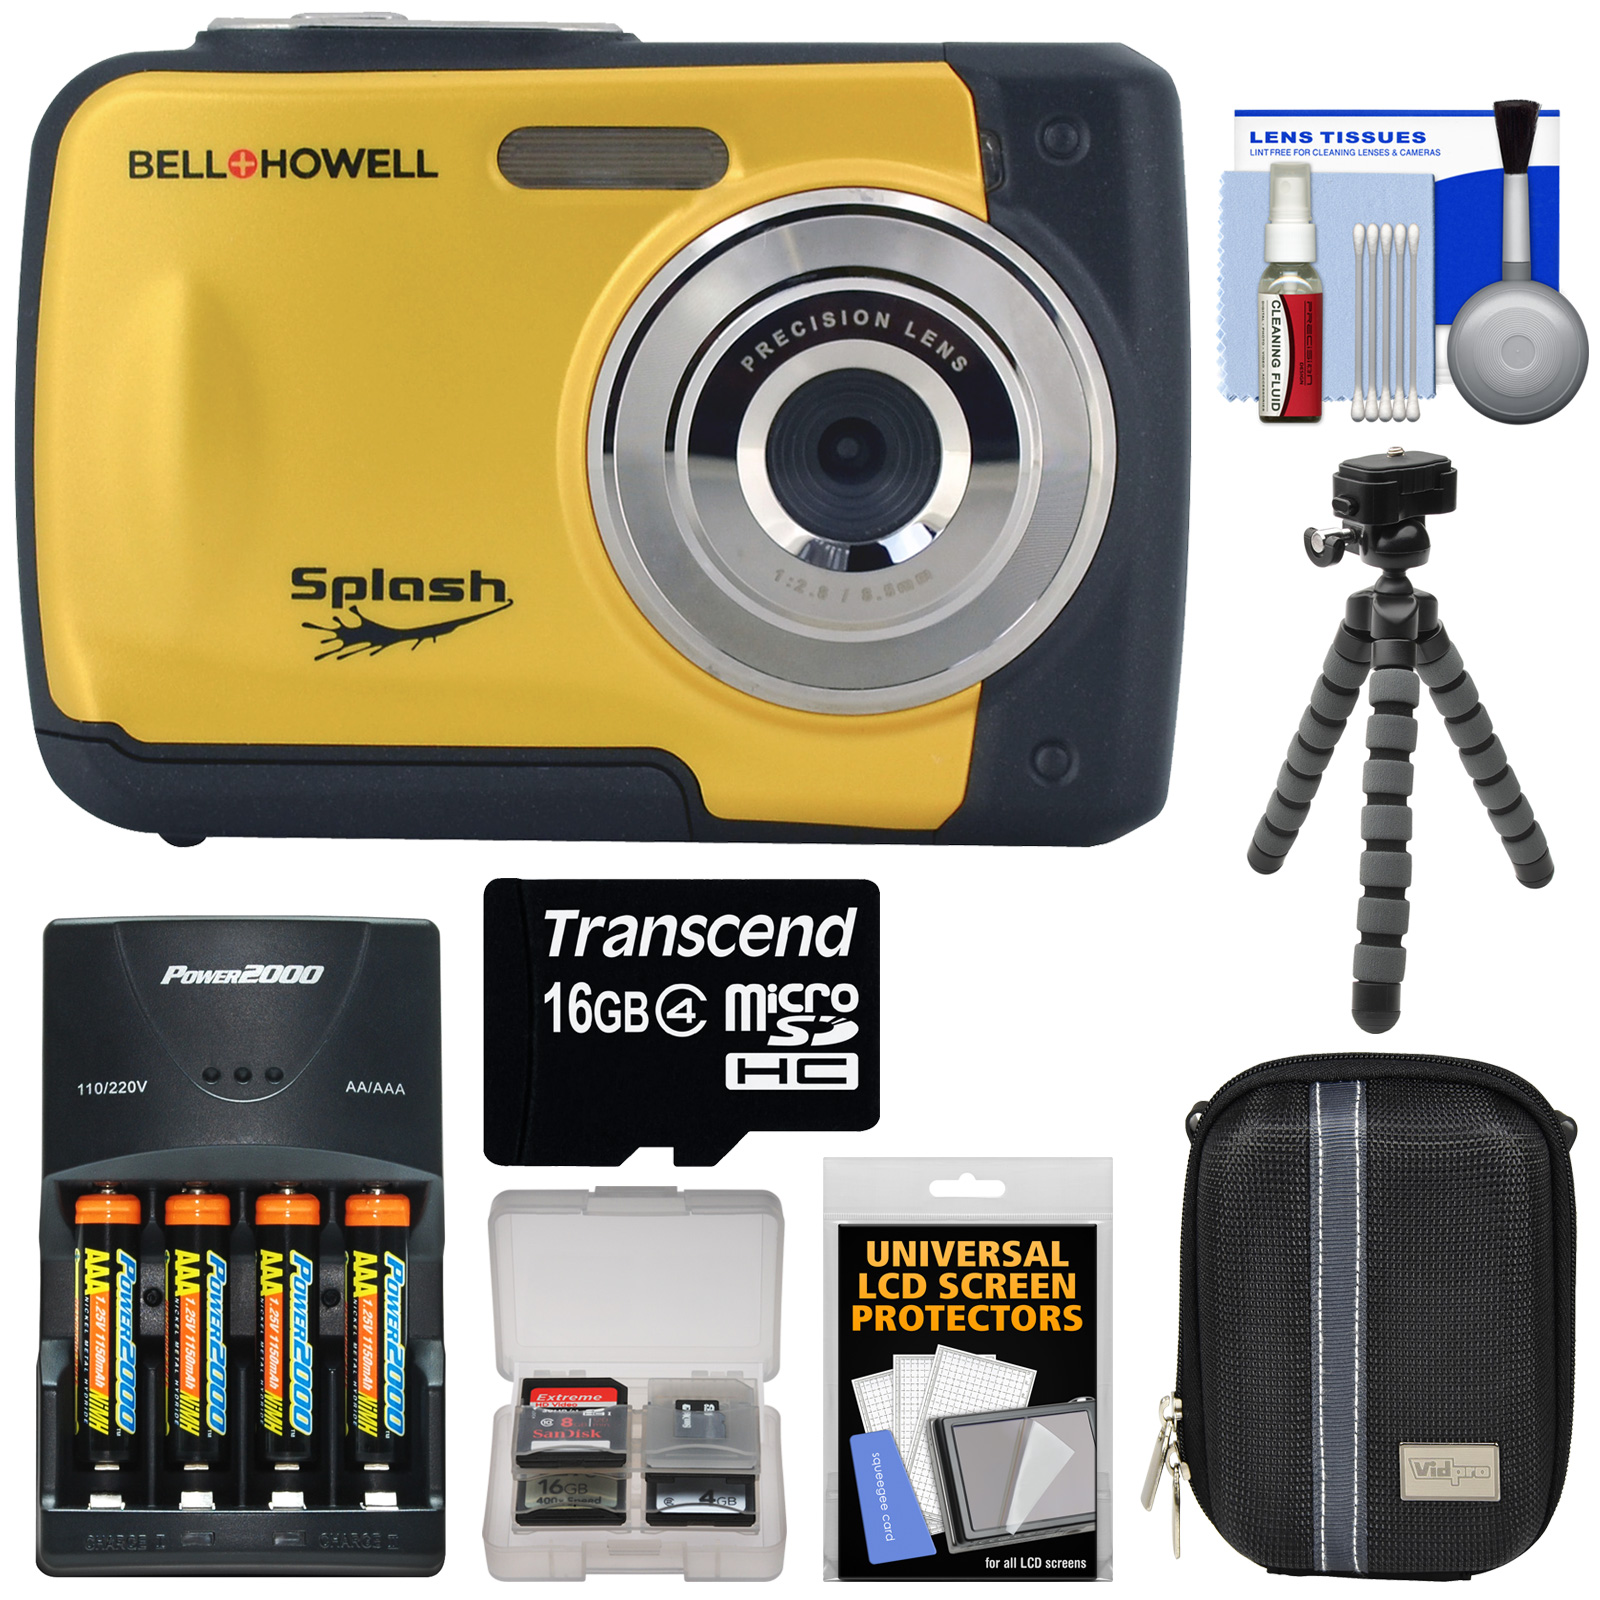 Bell & Howell Splash WP10 Shock & Waterproof Digital Camera (Blue) with 16GB Card + Batteries & Charger + Case + Flex Tripod + Kit